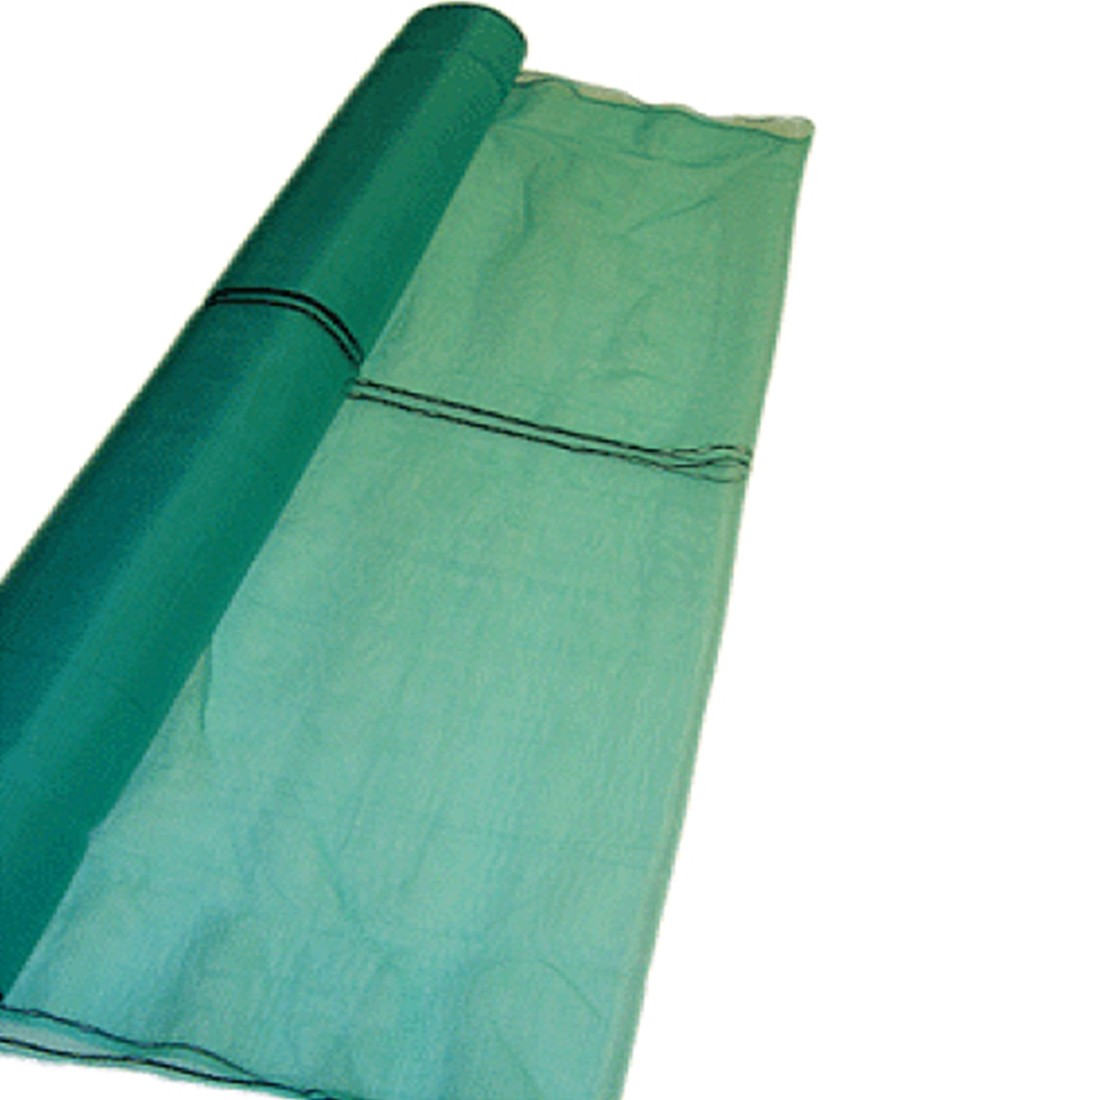 Green 45 Shade Netting 50m X 1m 2m Or 3m Wide